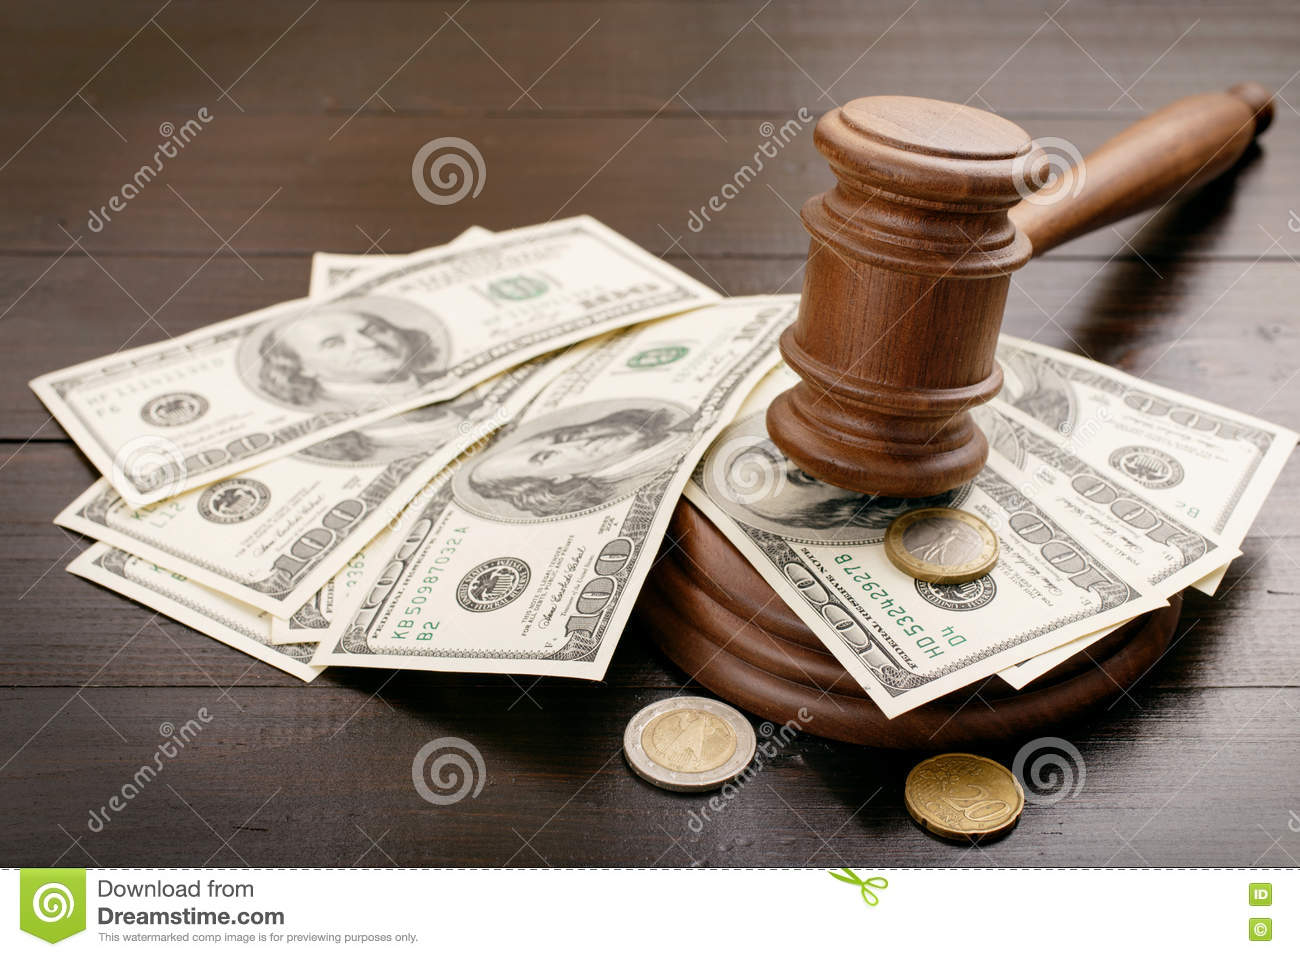 Judge gavel with dollars and euro cents